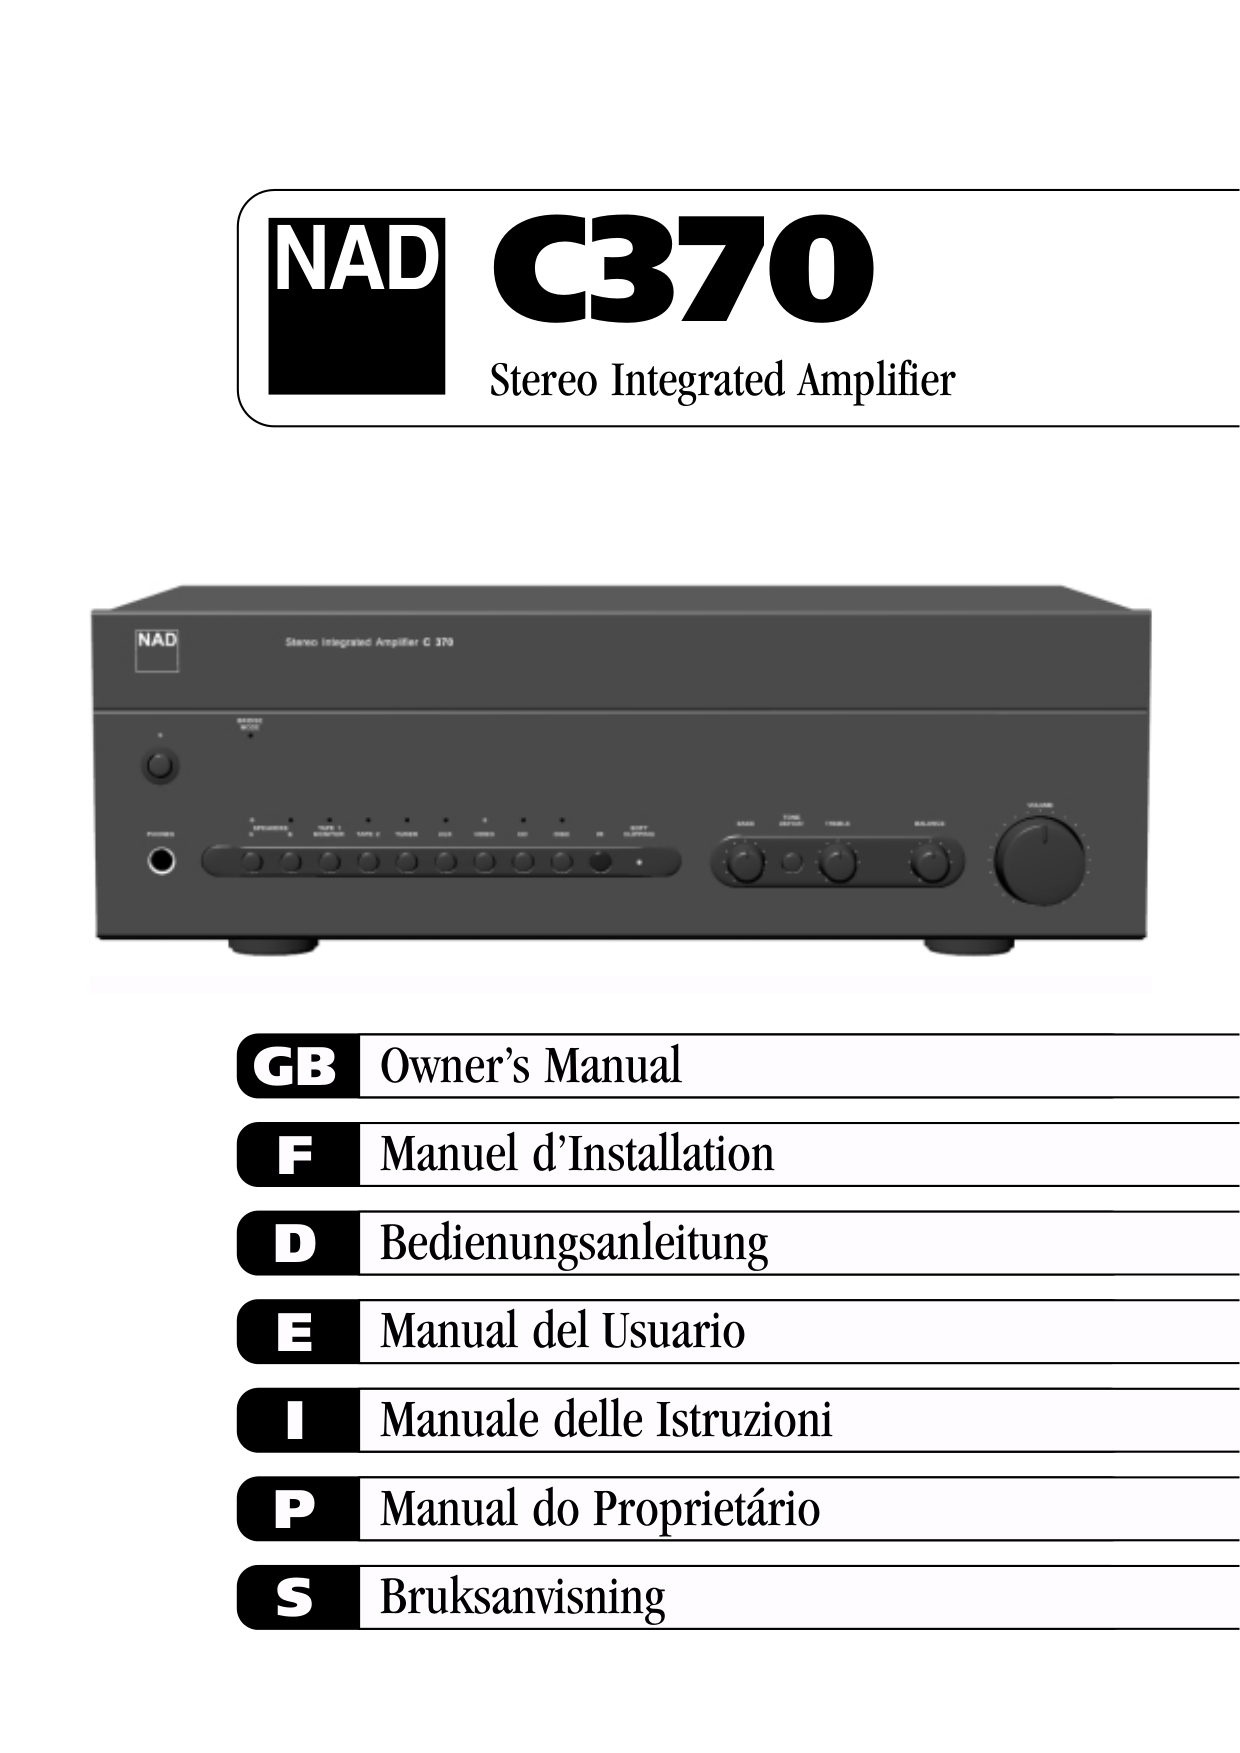 download free pdf for nad c370 amp manual rh umlib com nad c370 amplifier manual nad c370 repair manual